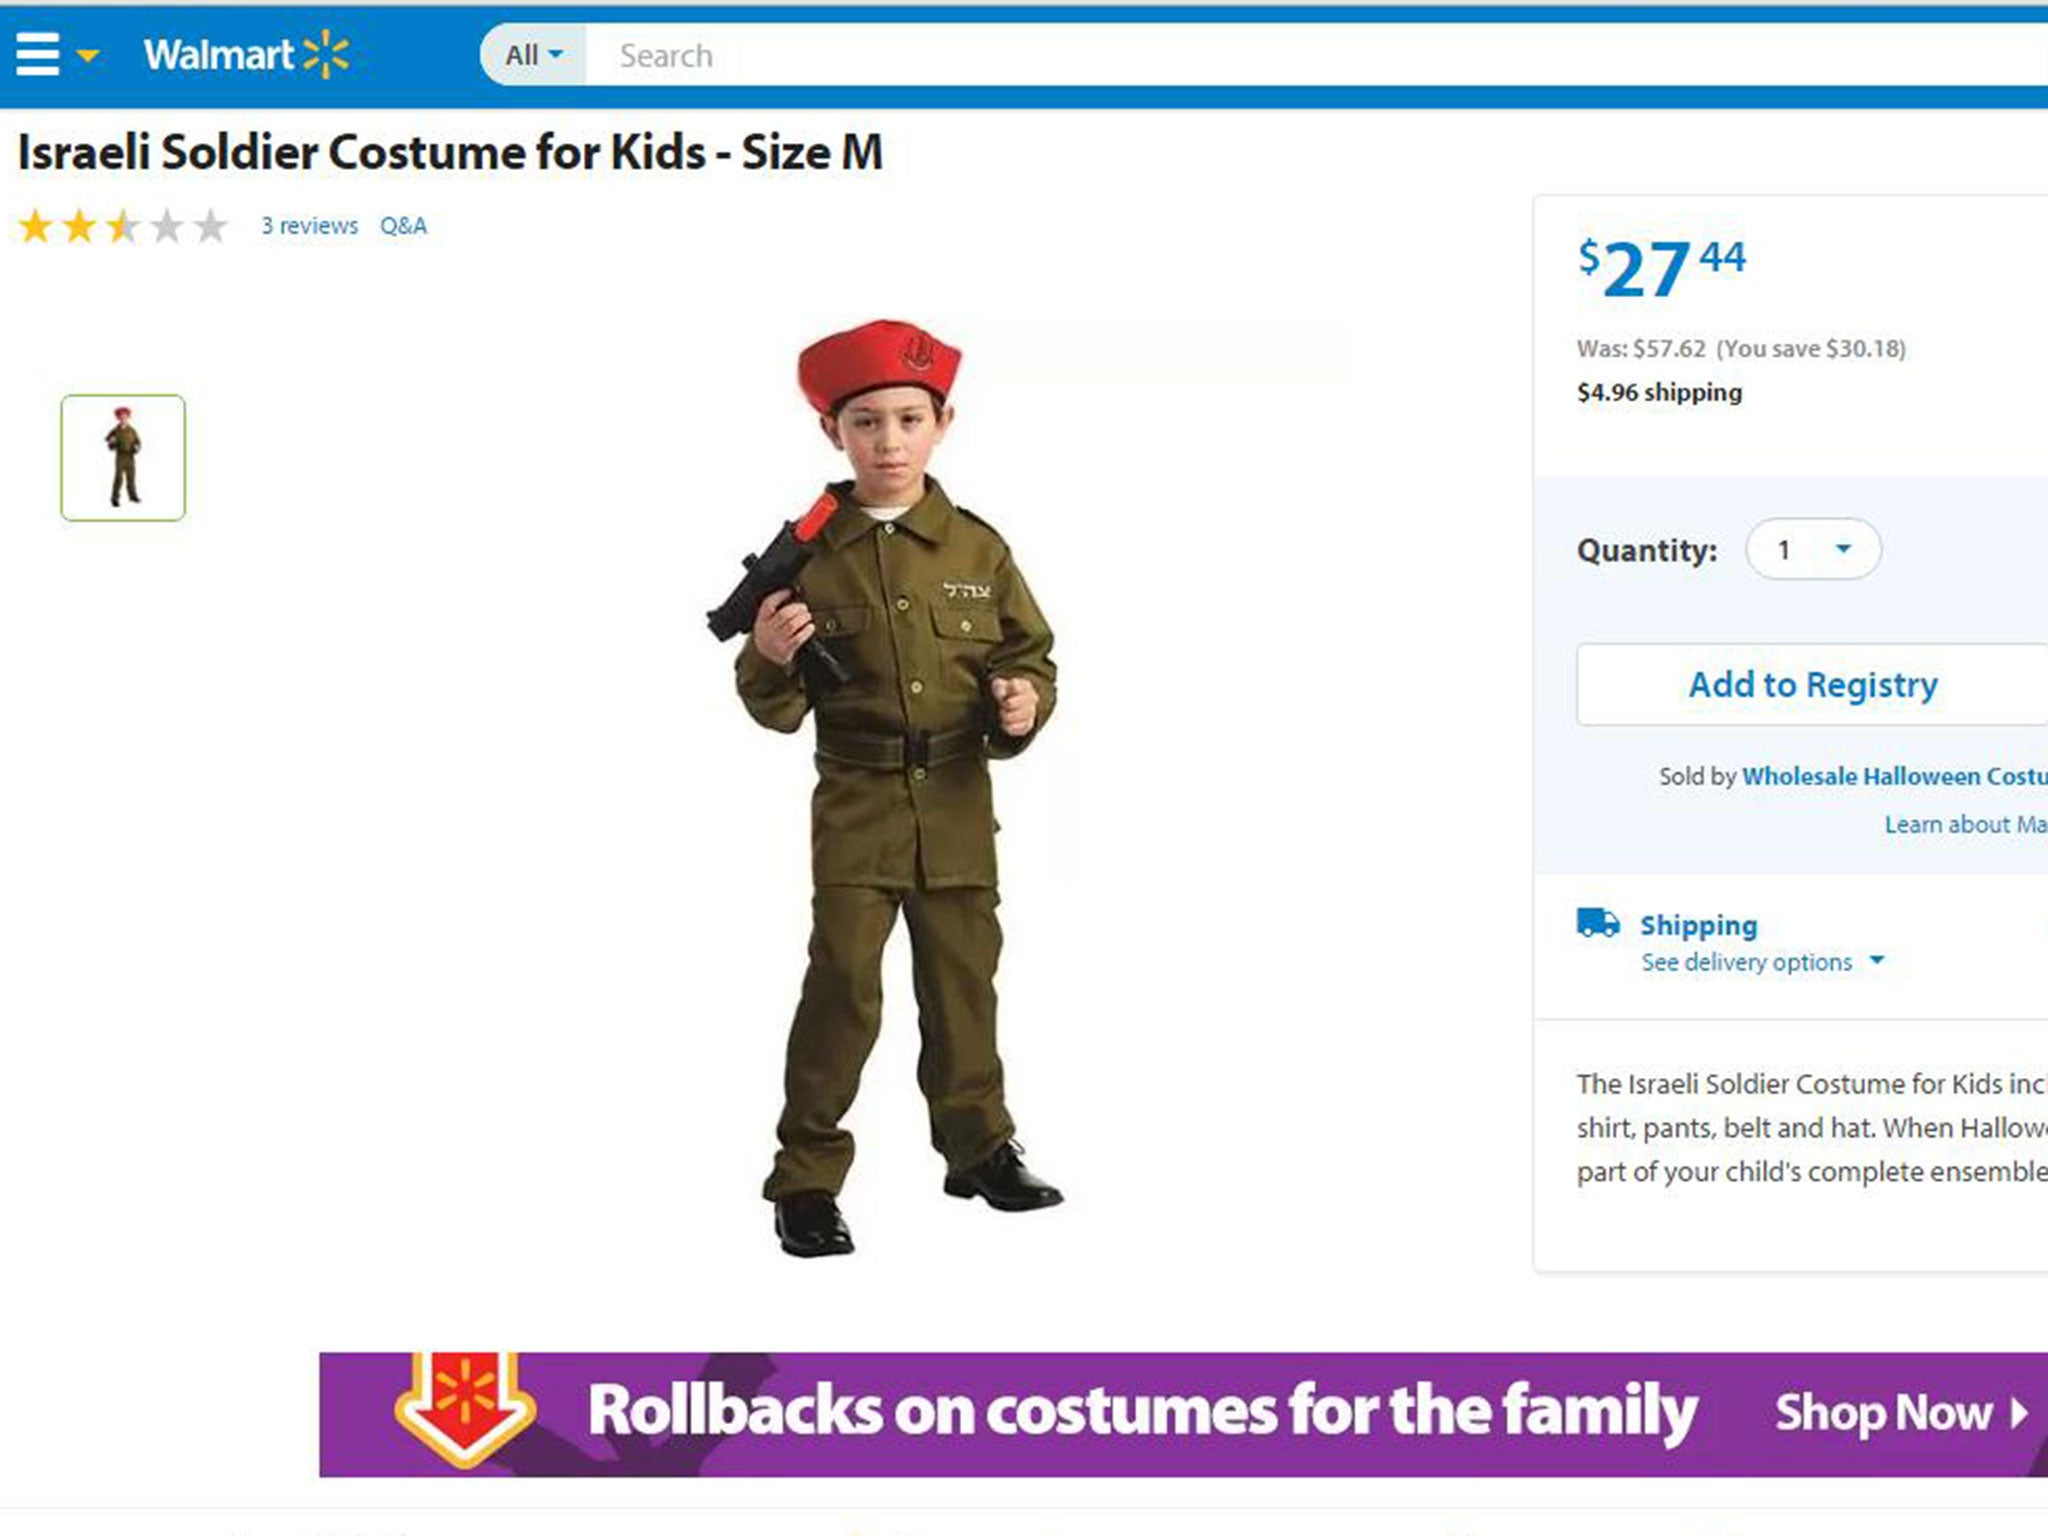 walmart israeli soldier halloween costume for children sparks